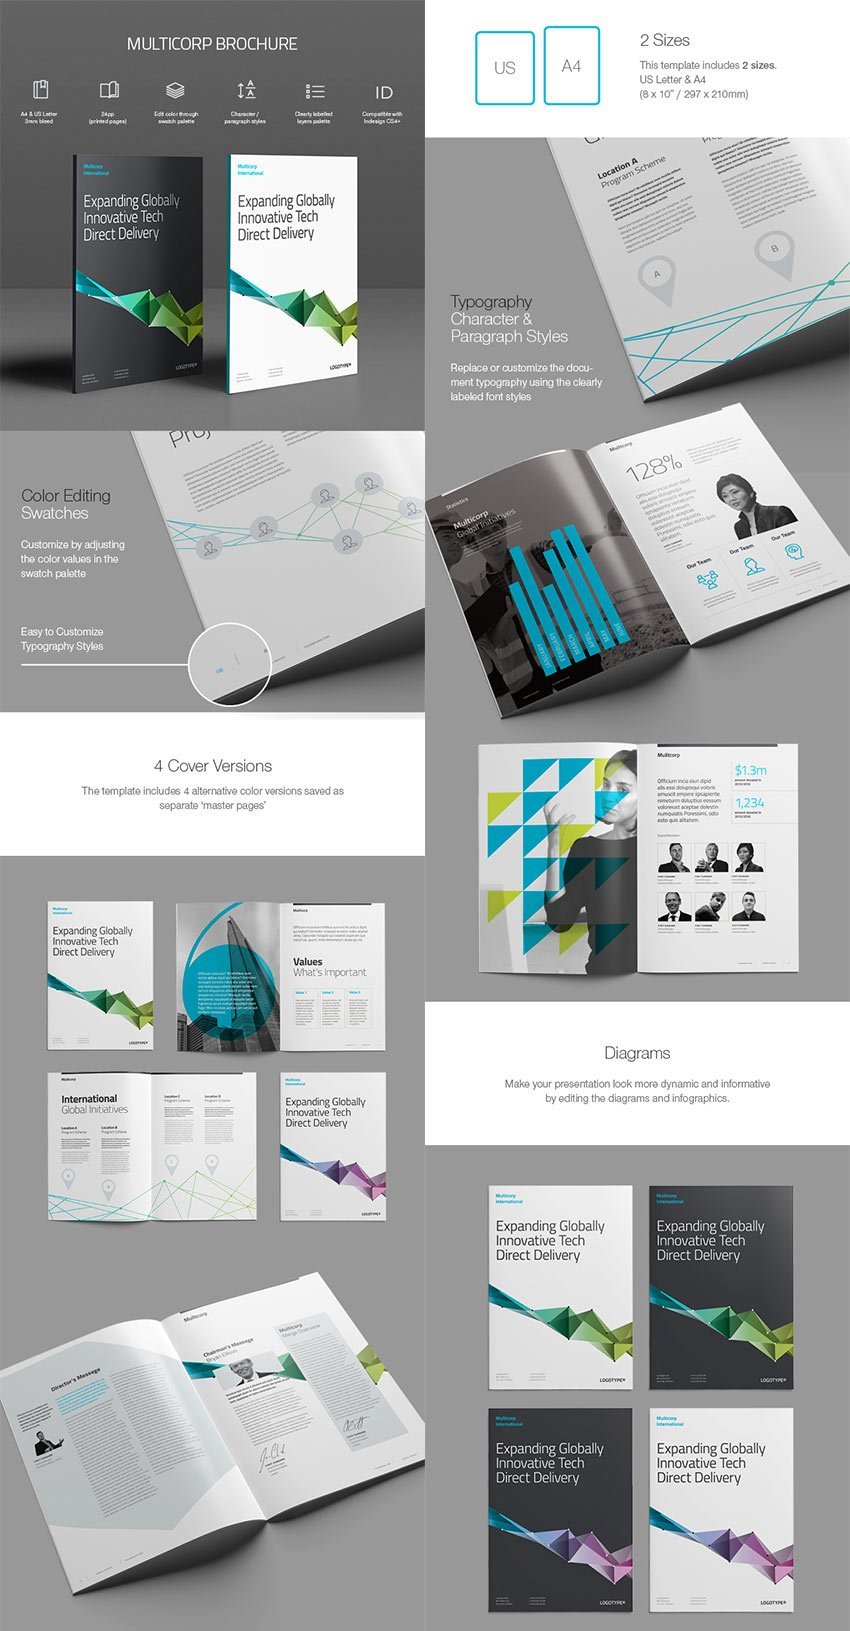 Multicorp Brochure Template INDD